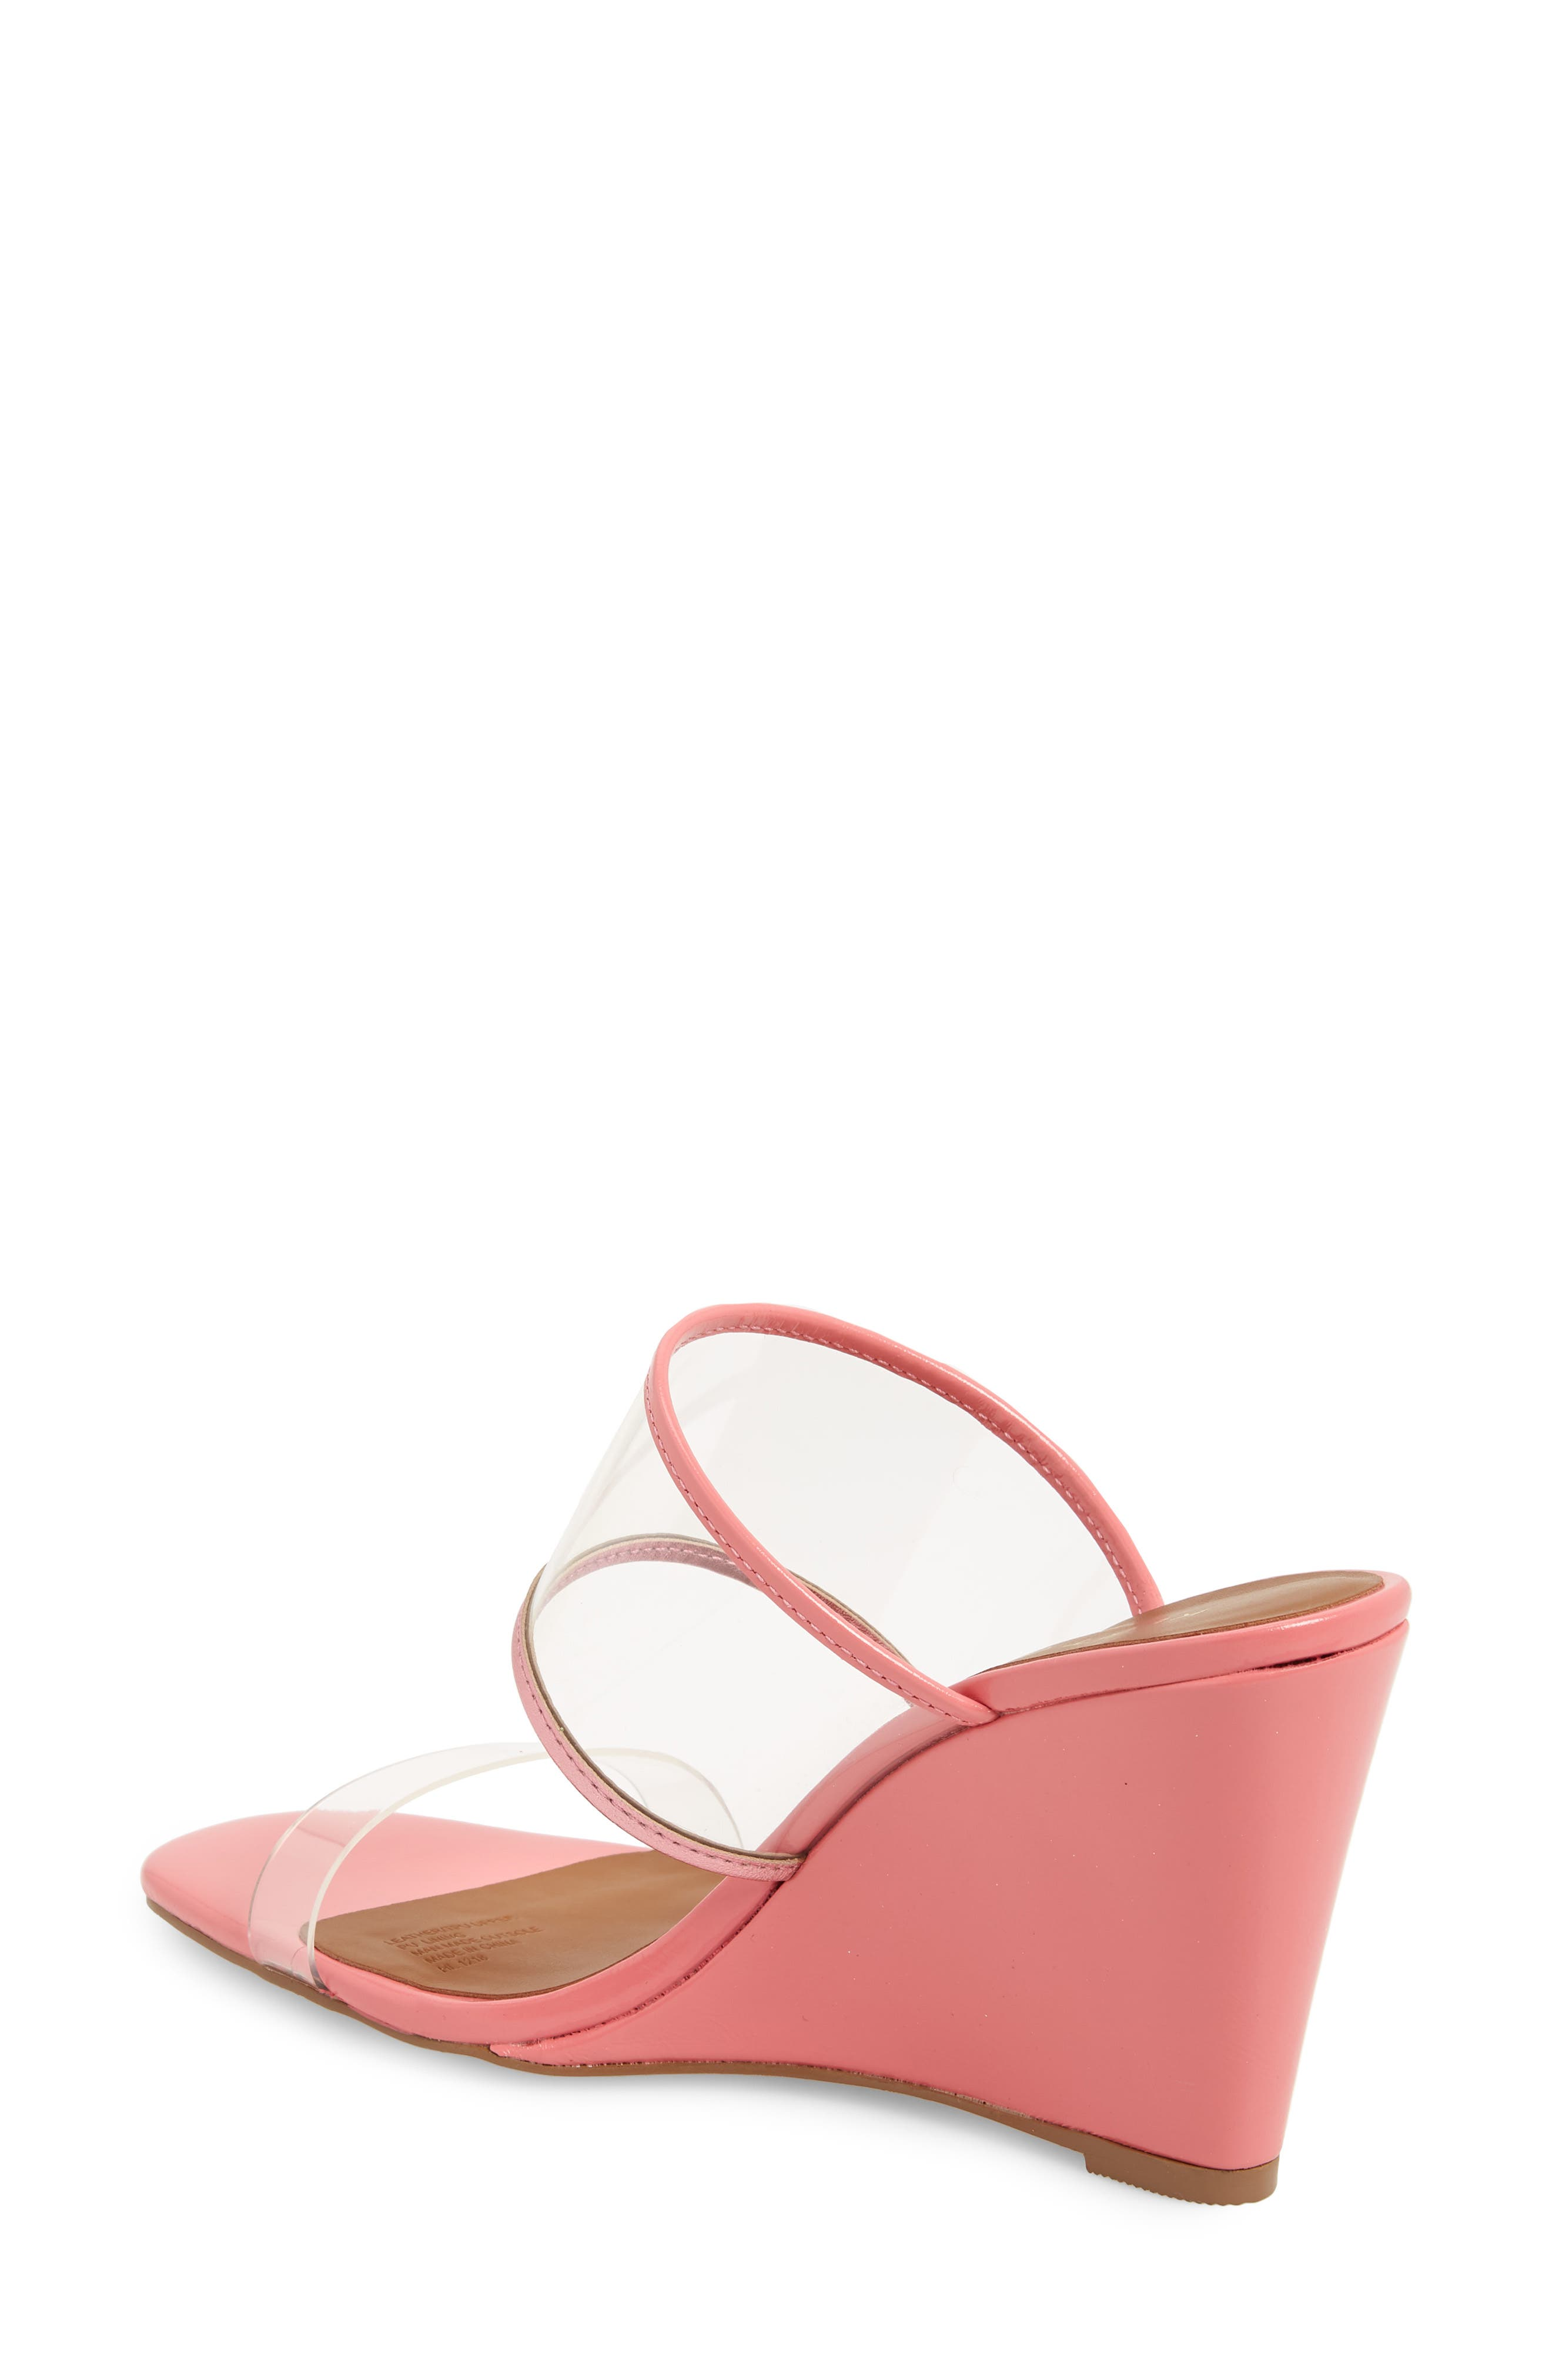 KURT GEIGER LONDON,                             Charing Wedge Slide Sandal,                             Alternate thumbnail 2, color,                             PINK FAUX LEATHER